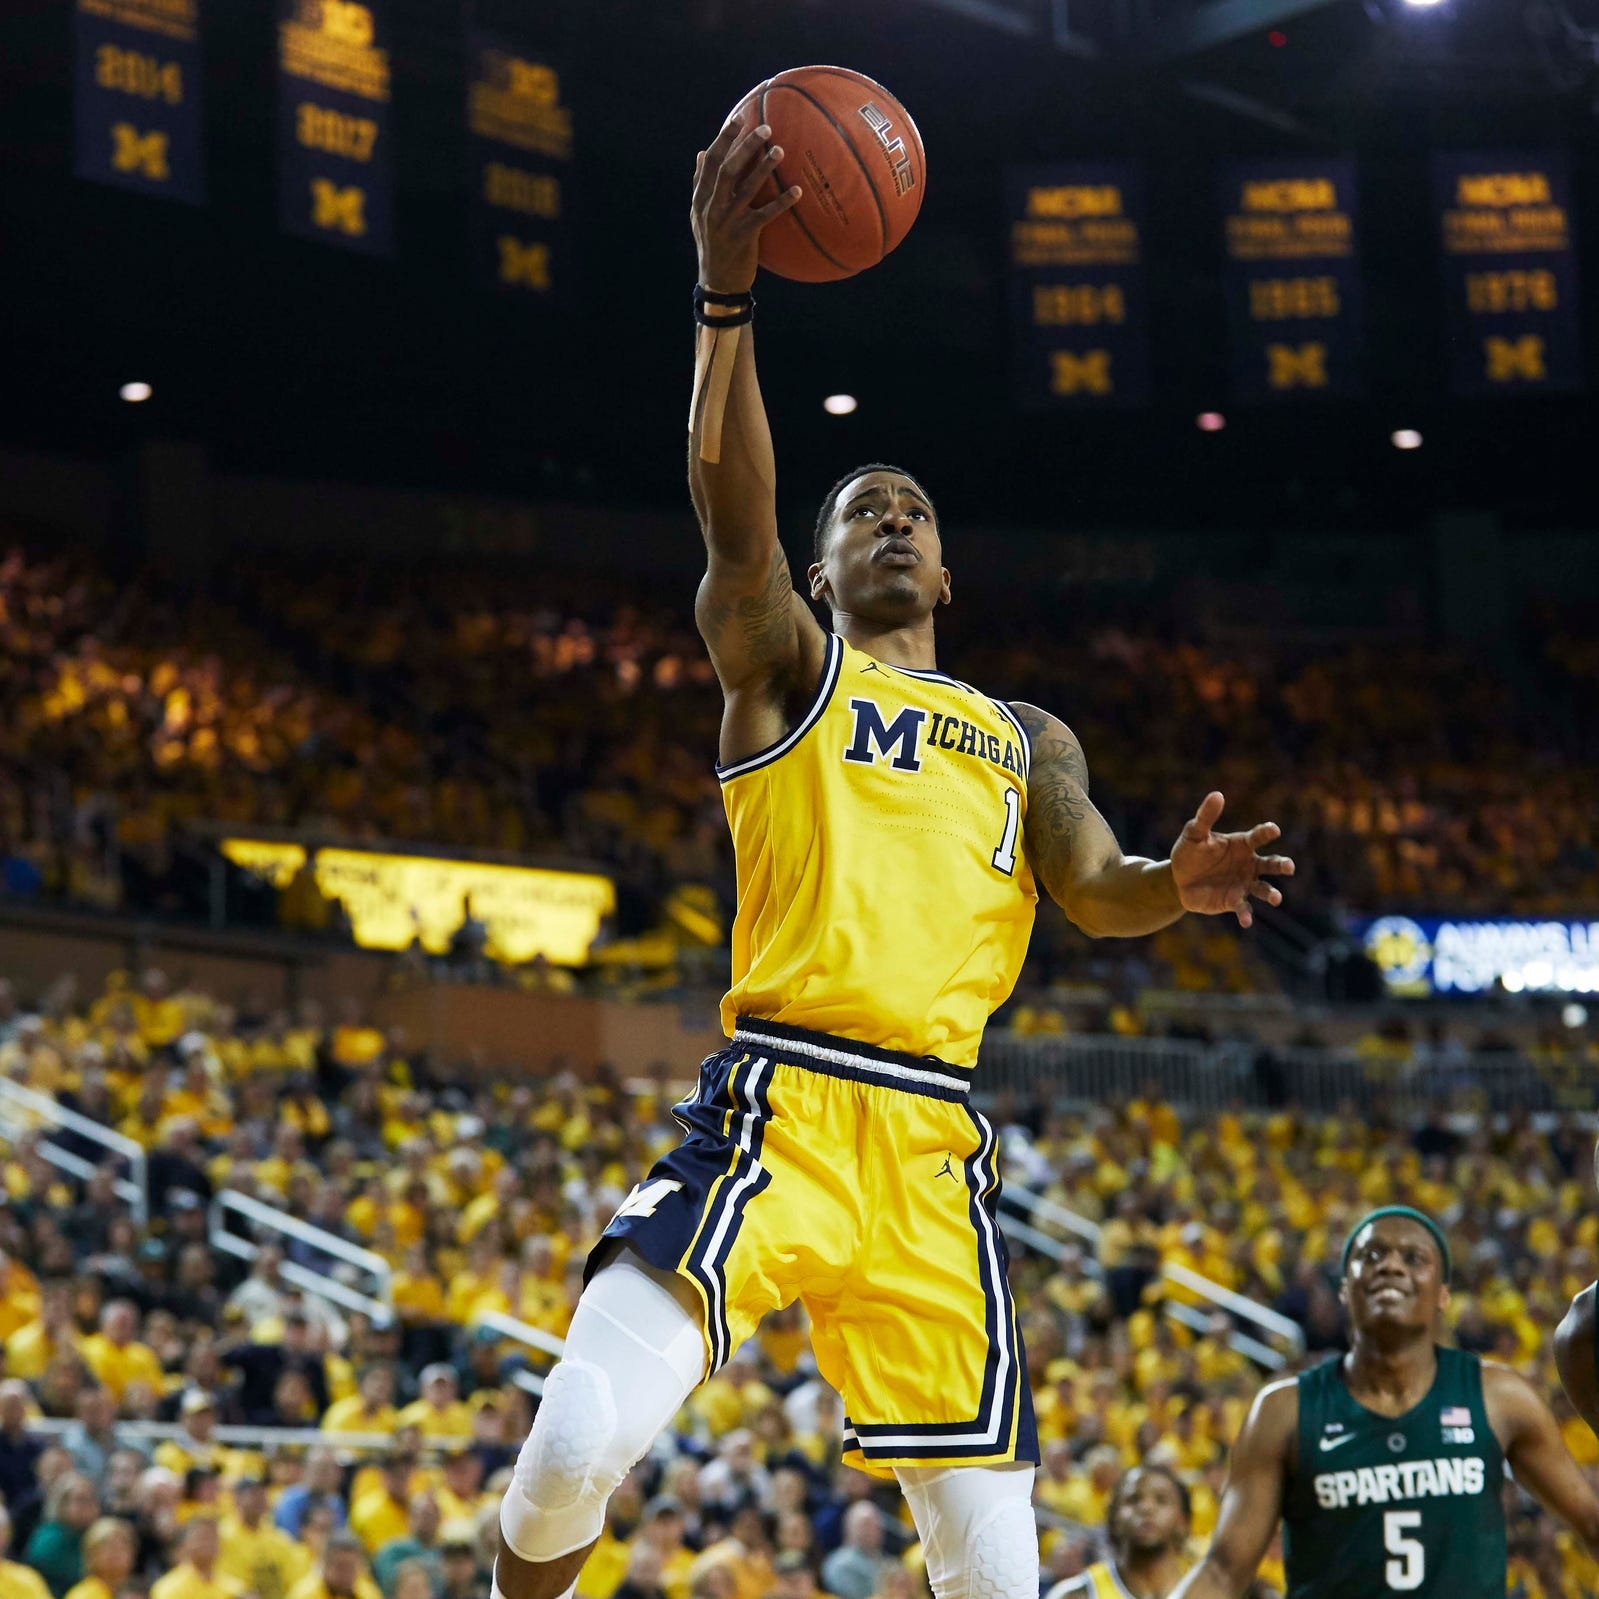 Michigan's Charles Matthews out with ankle injury against Nebraska